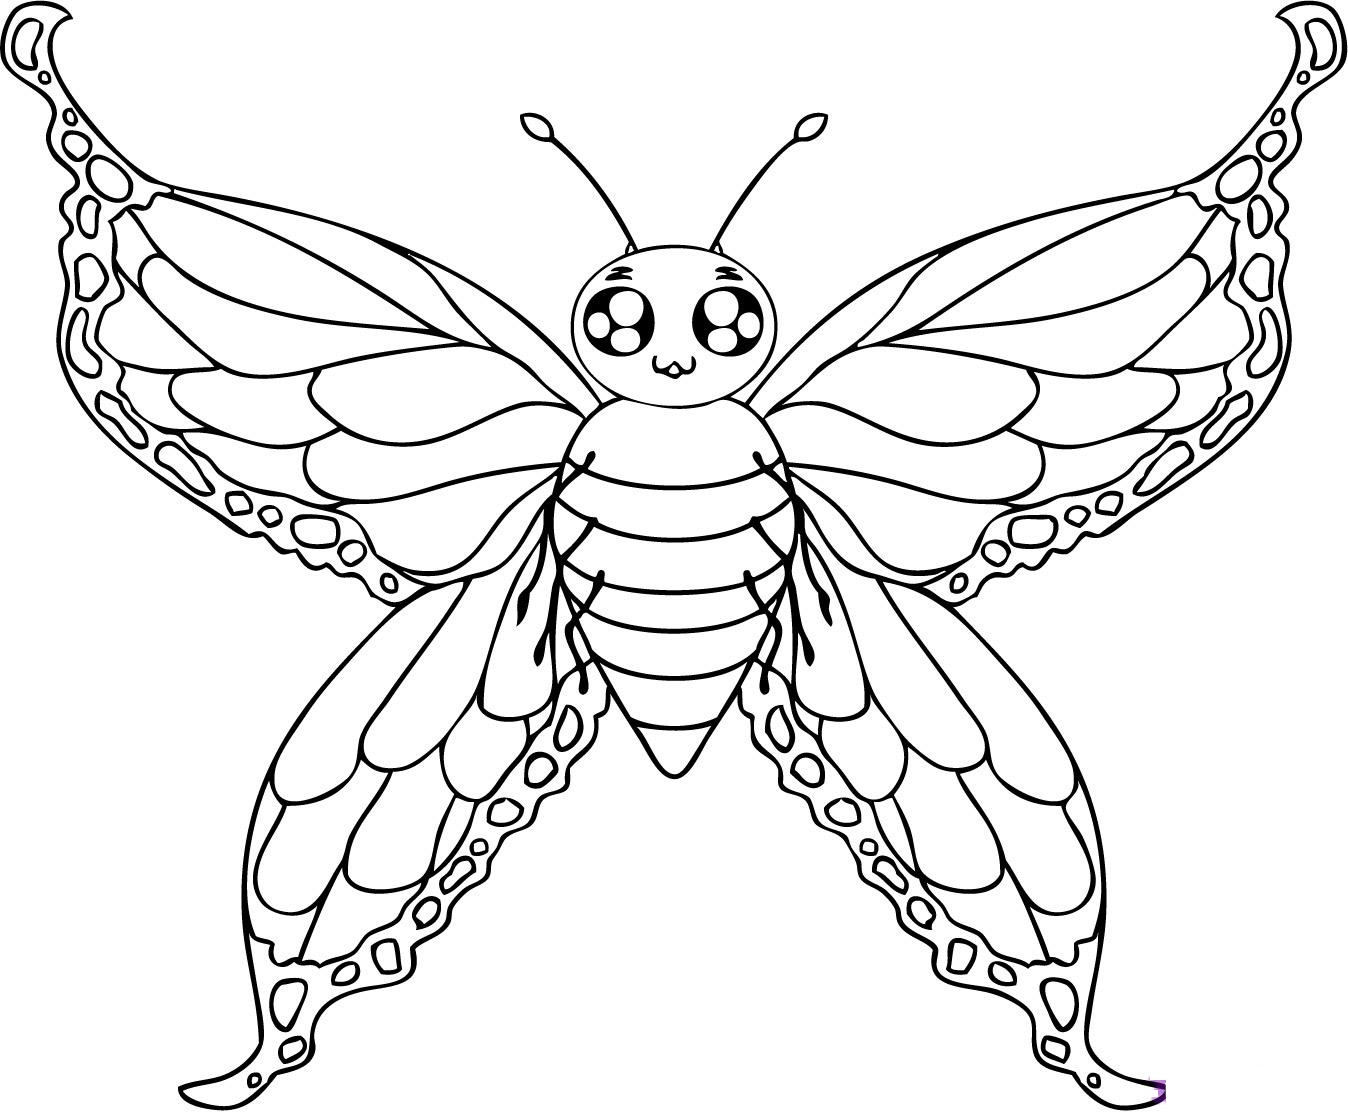 1348x1112 Spotlight Cartoon Butterfly Coloring Pages Fre